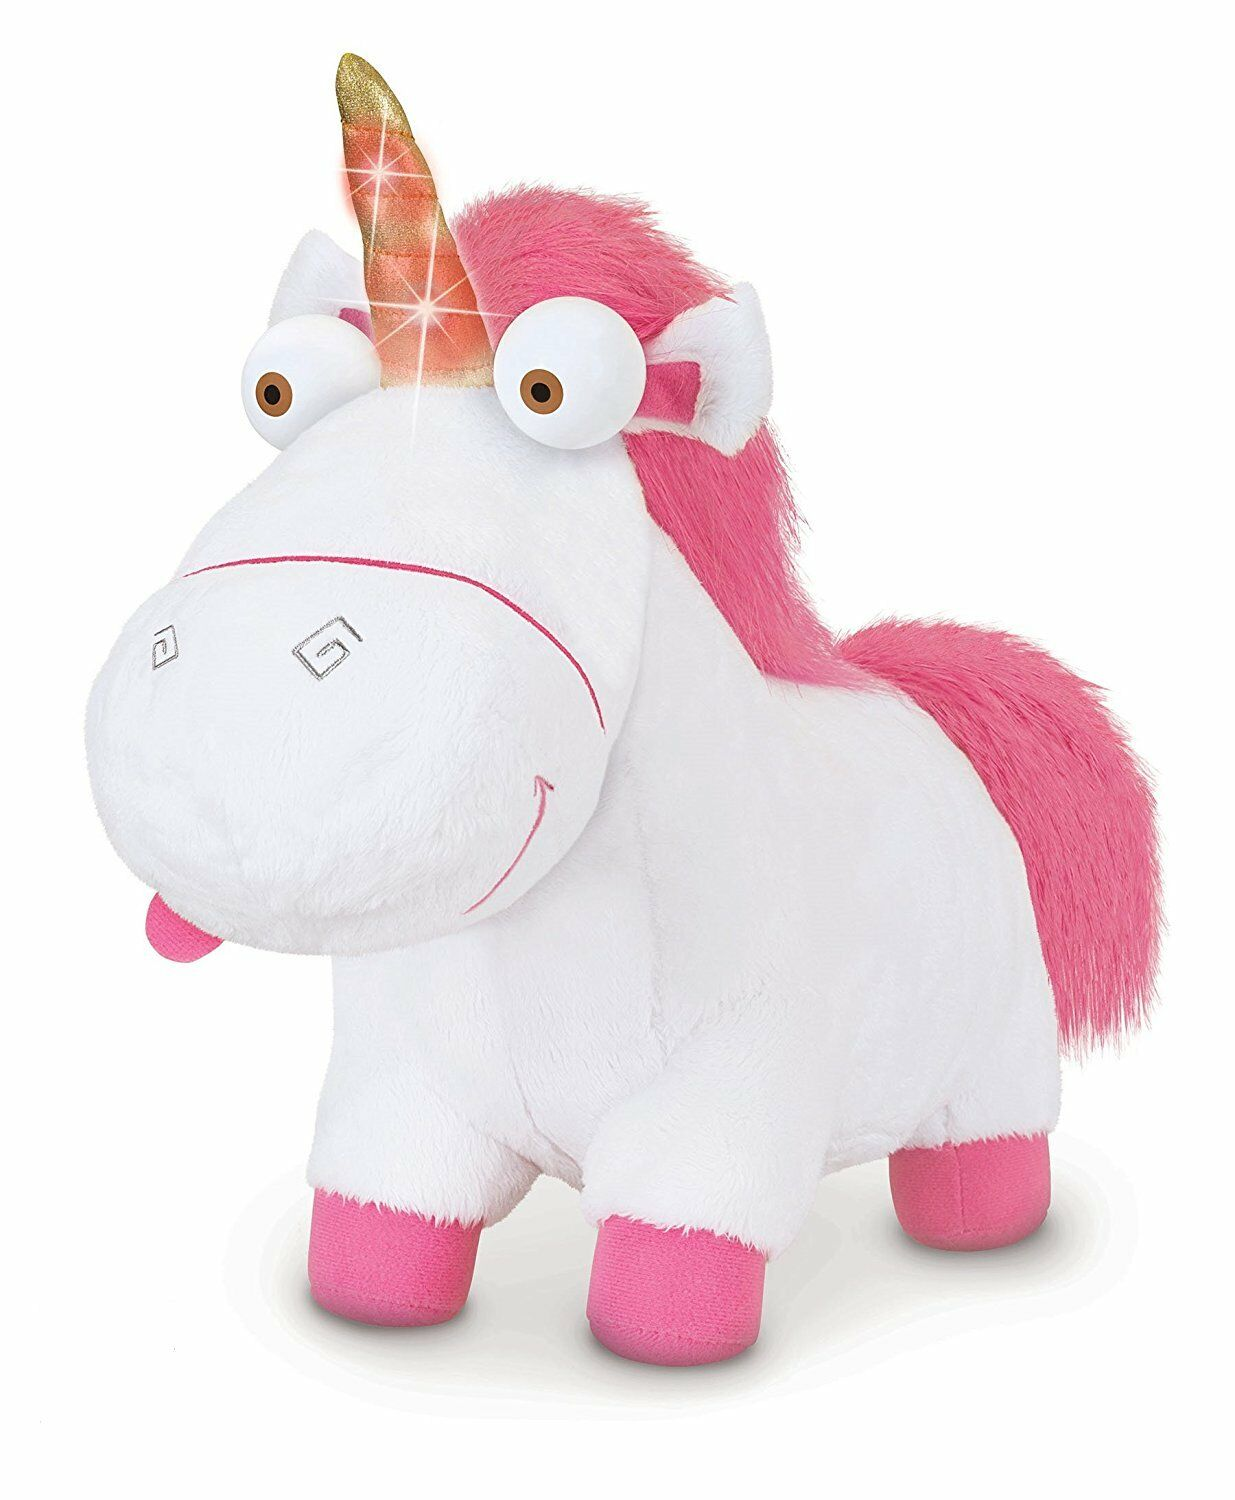 Despicable Me 3 Light-Up Fluffy Unicorn Plush